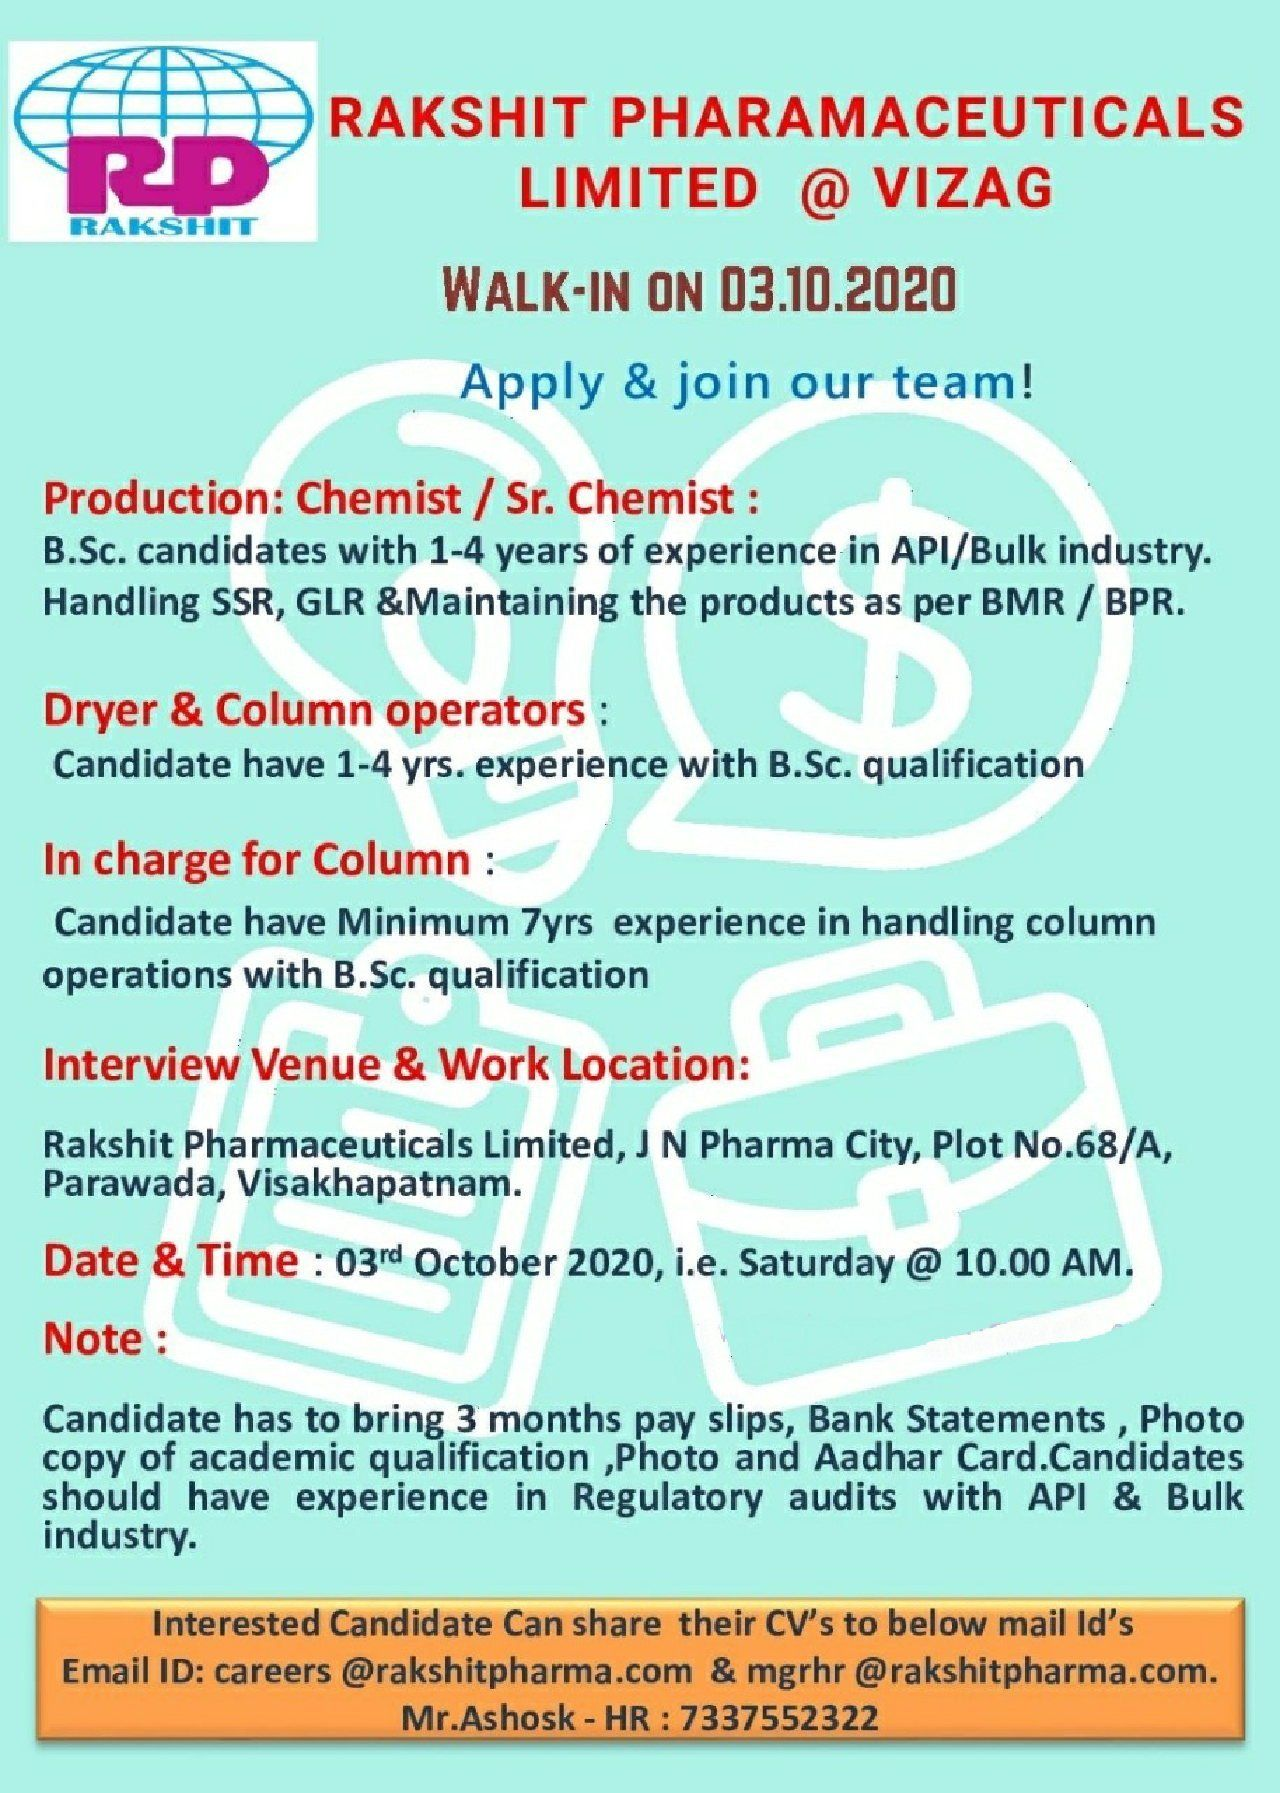 Walk In Drive For Multiple Positions In Production Department At Rakhit Pharmaceuticals On 3rd Oct 2020 Pharma Walks Late Pharmaceutical Positivity Pharma